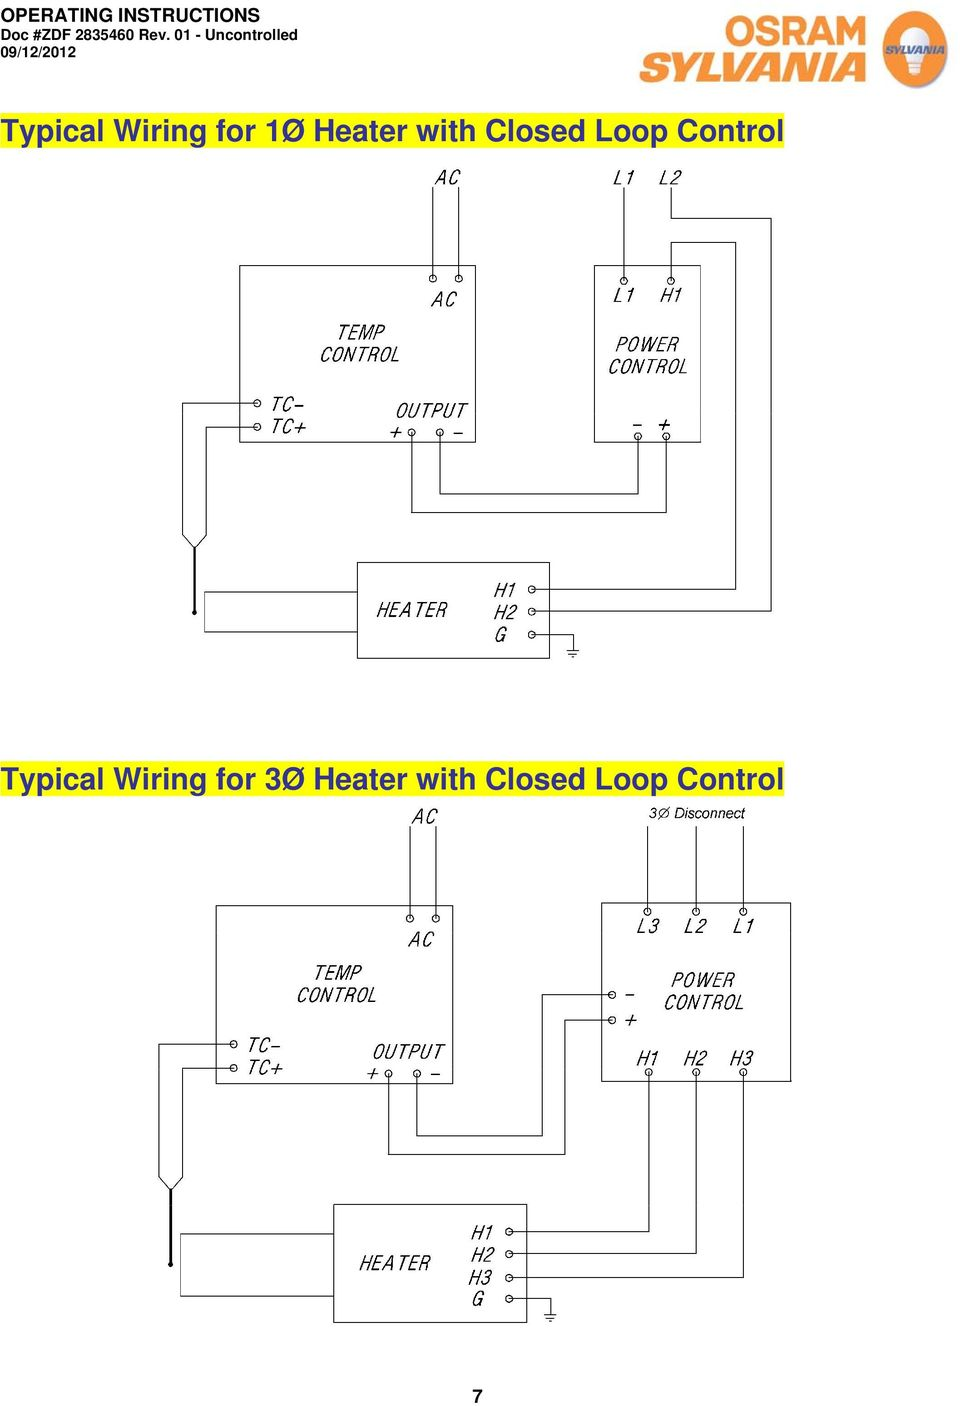 Control Typical Wiring for